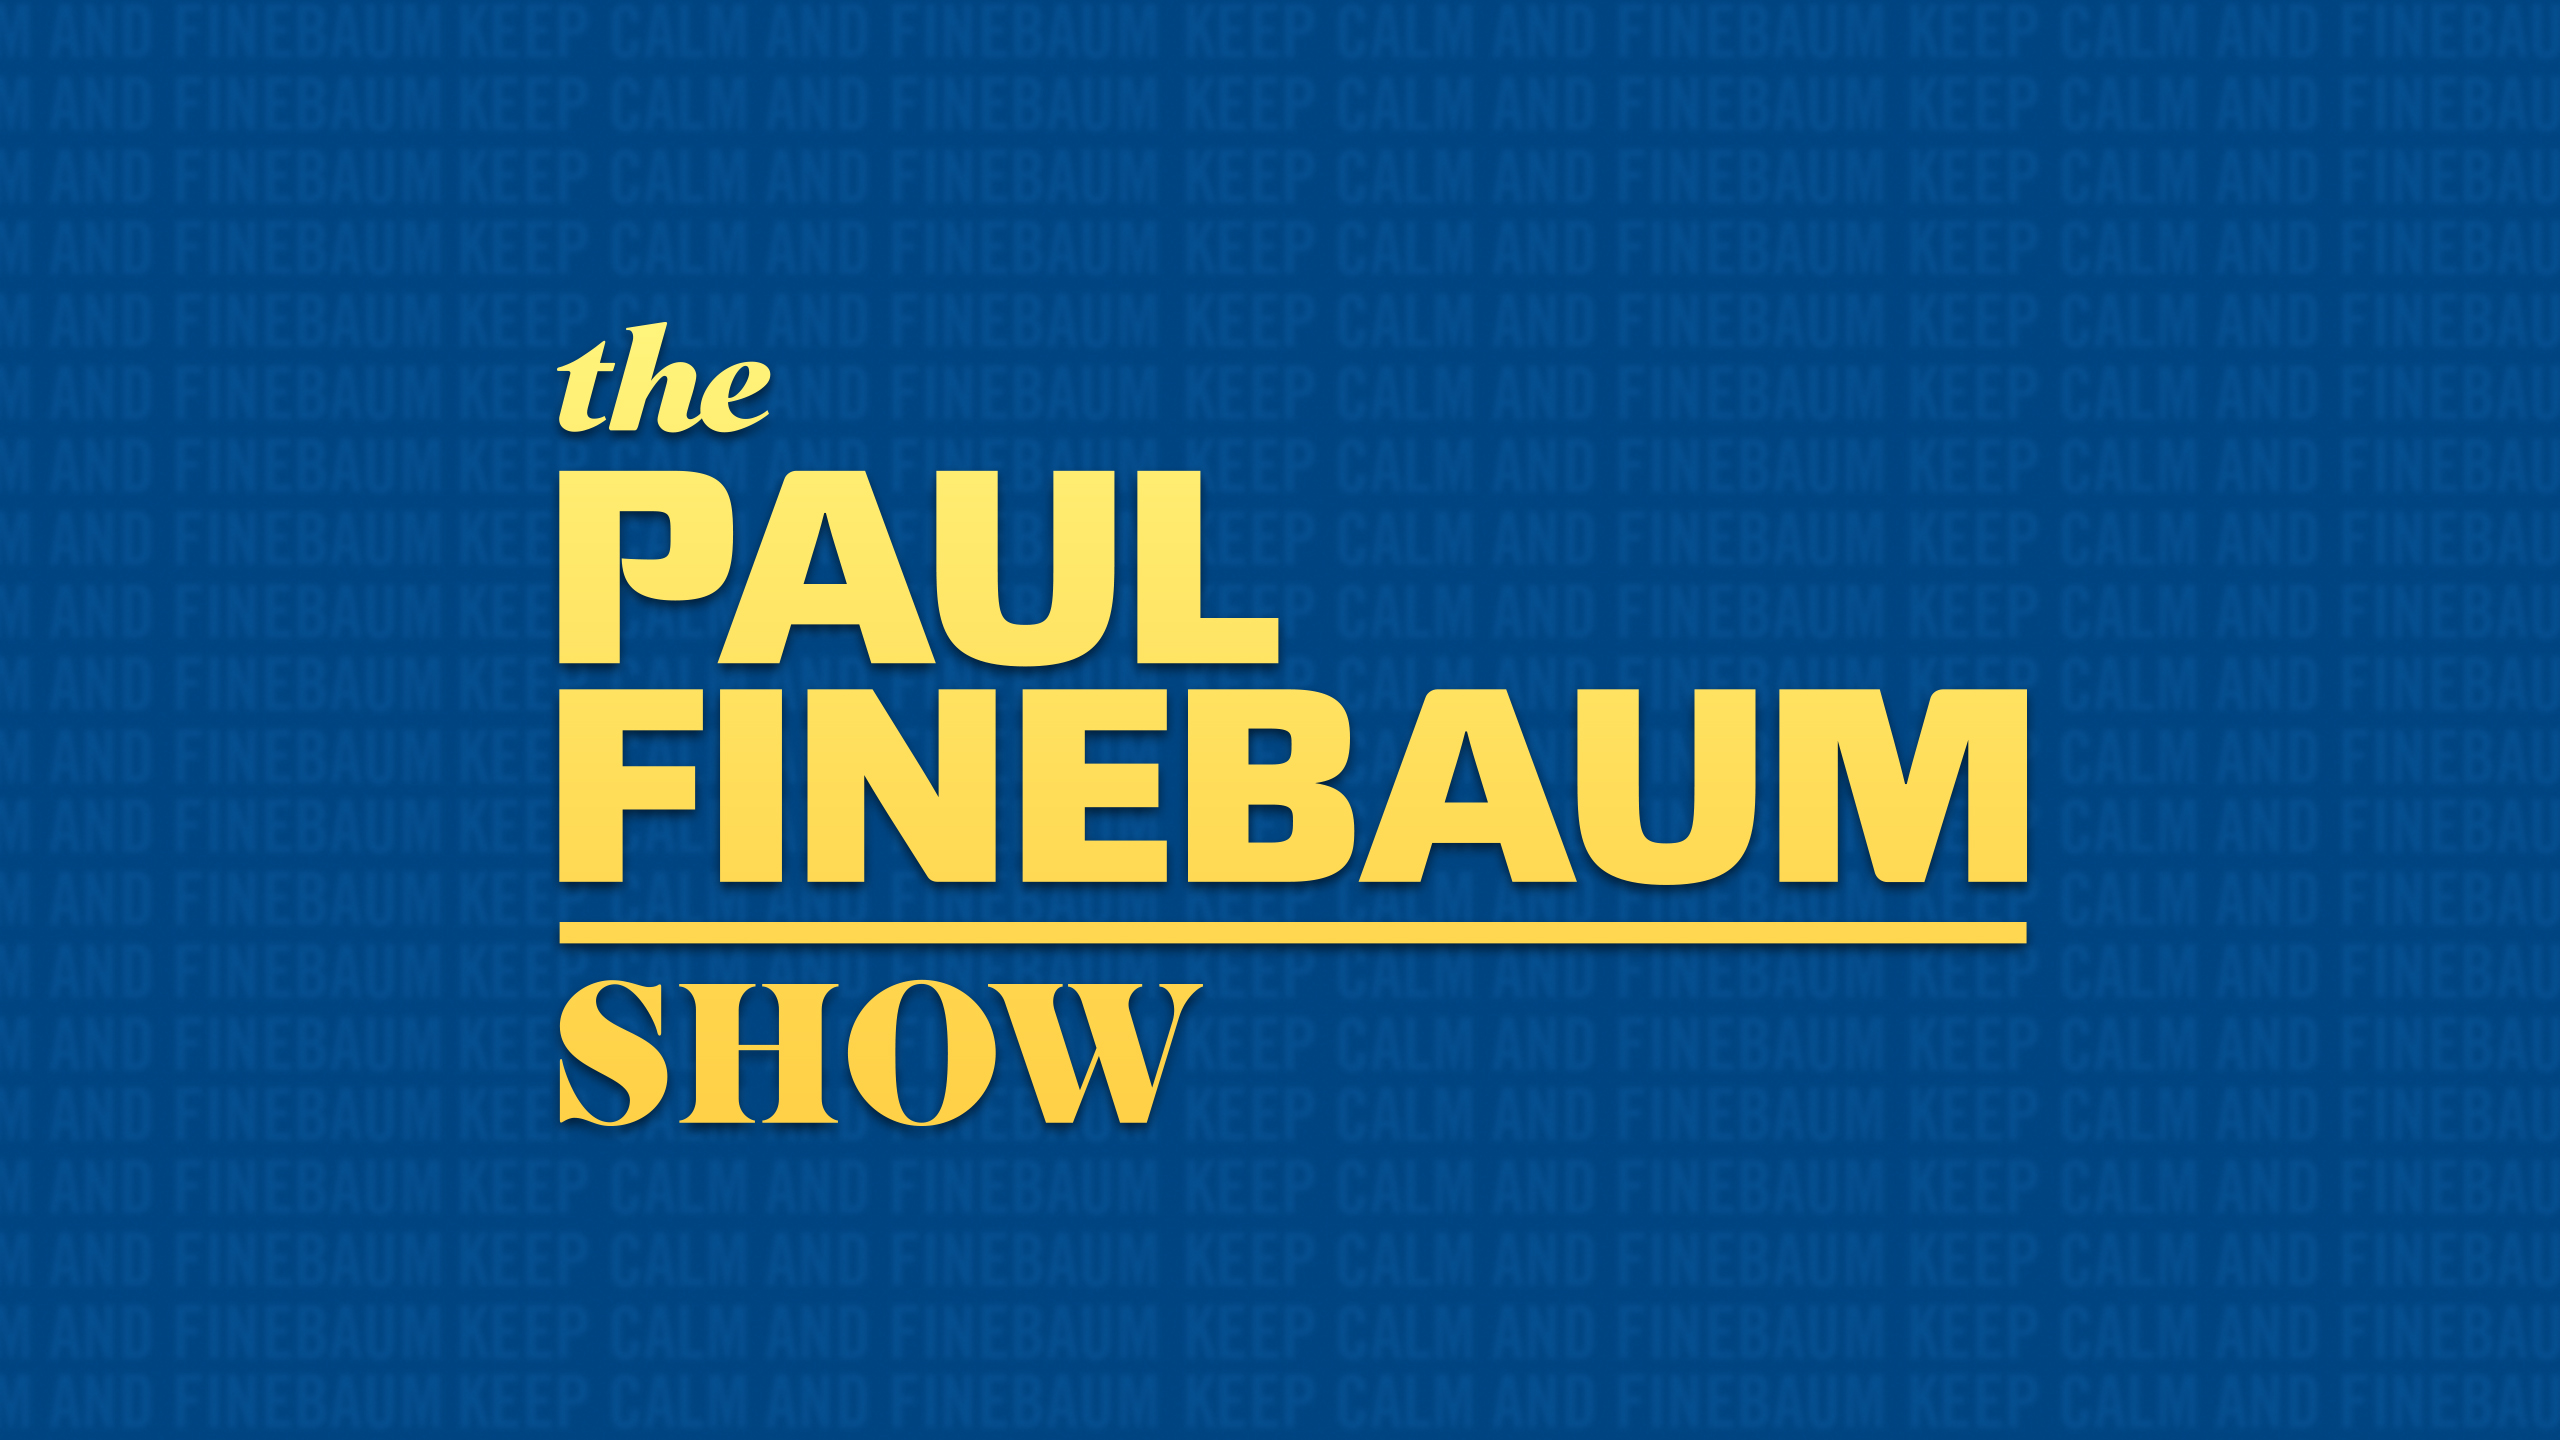 Wed, 10/17 - The Paul Finebaum Show